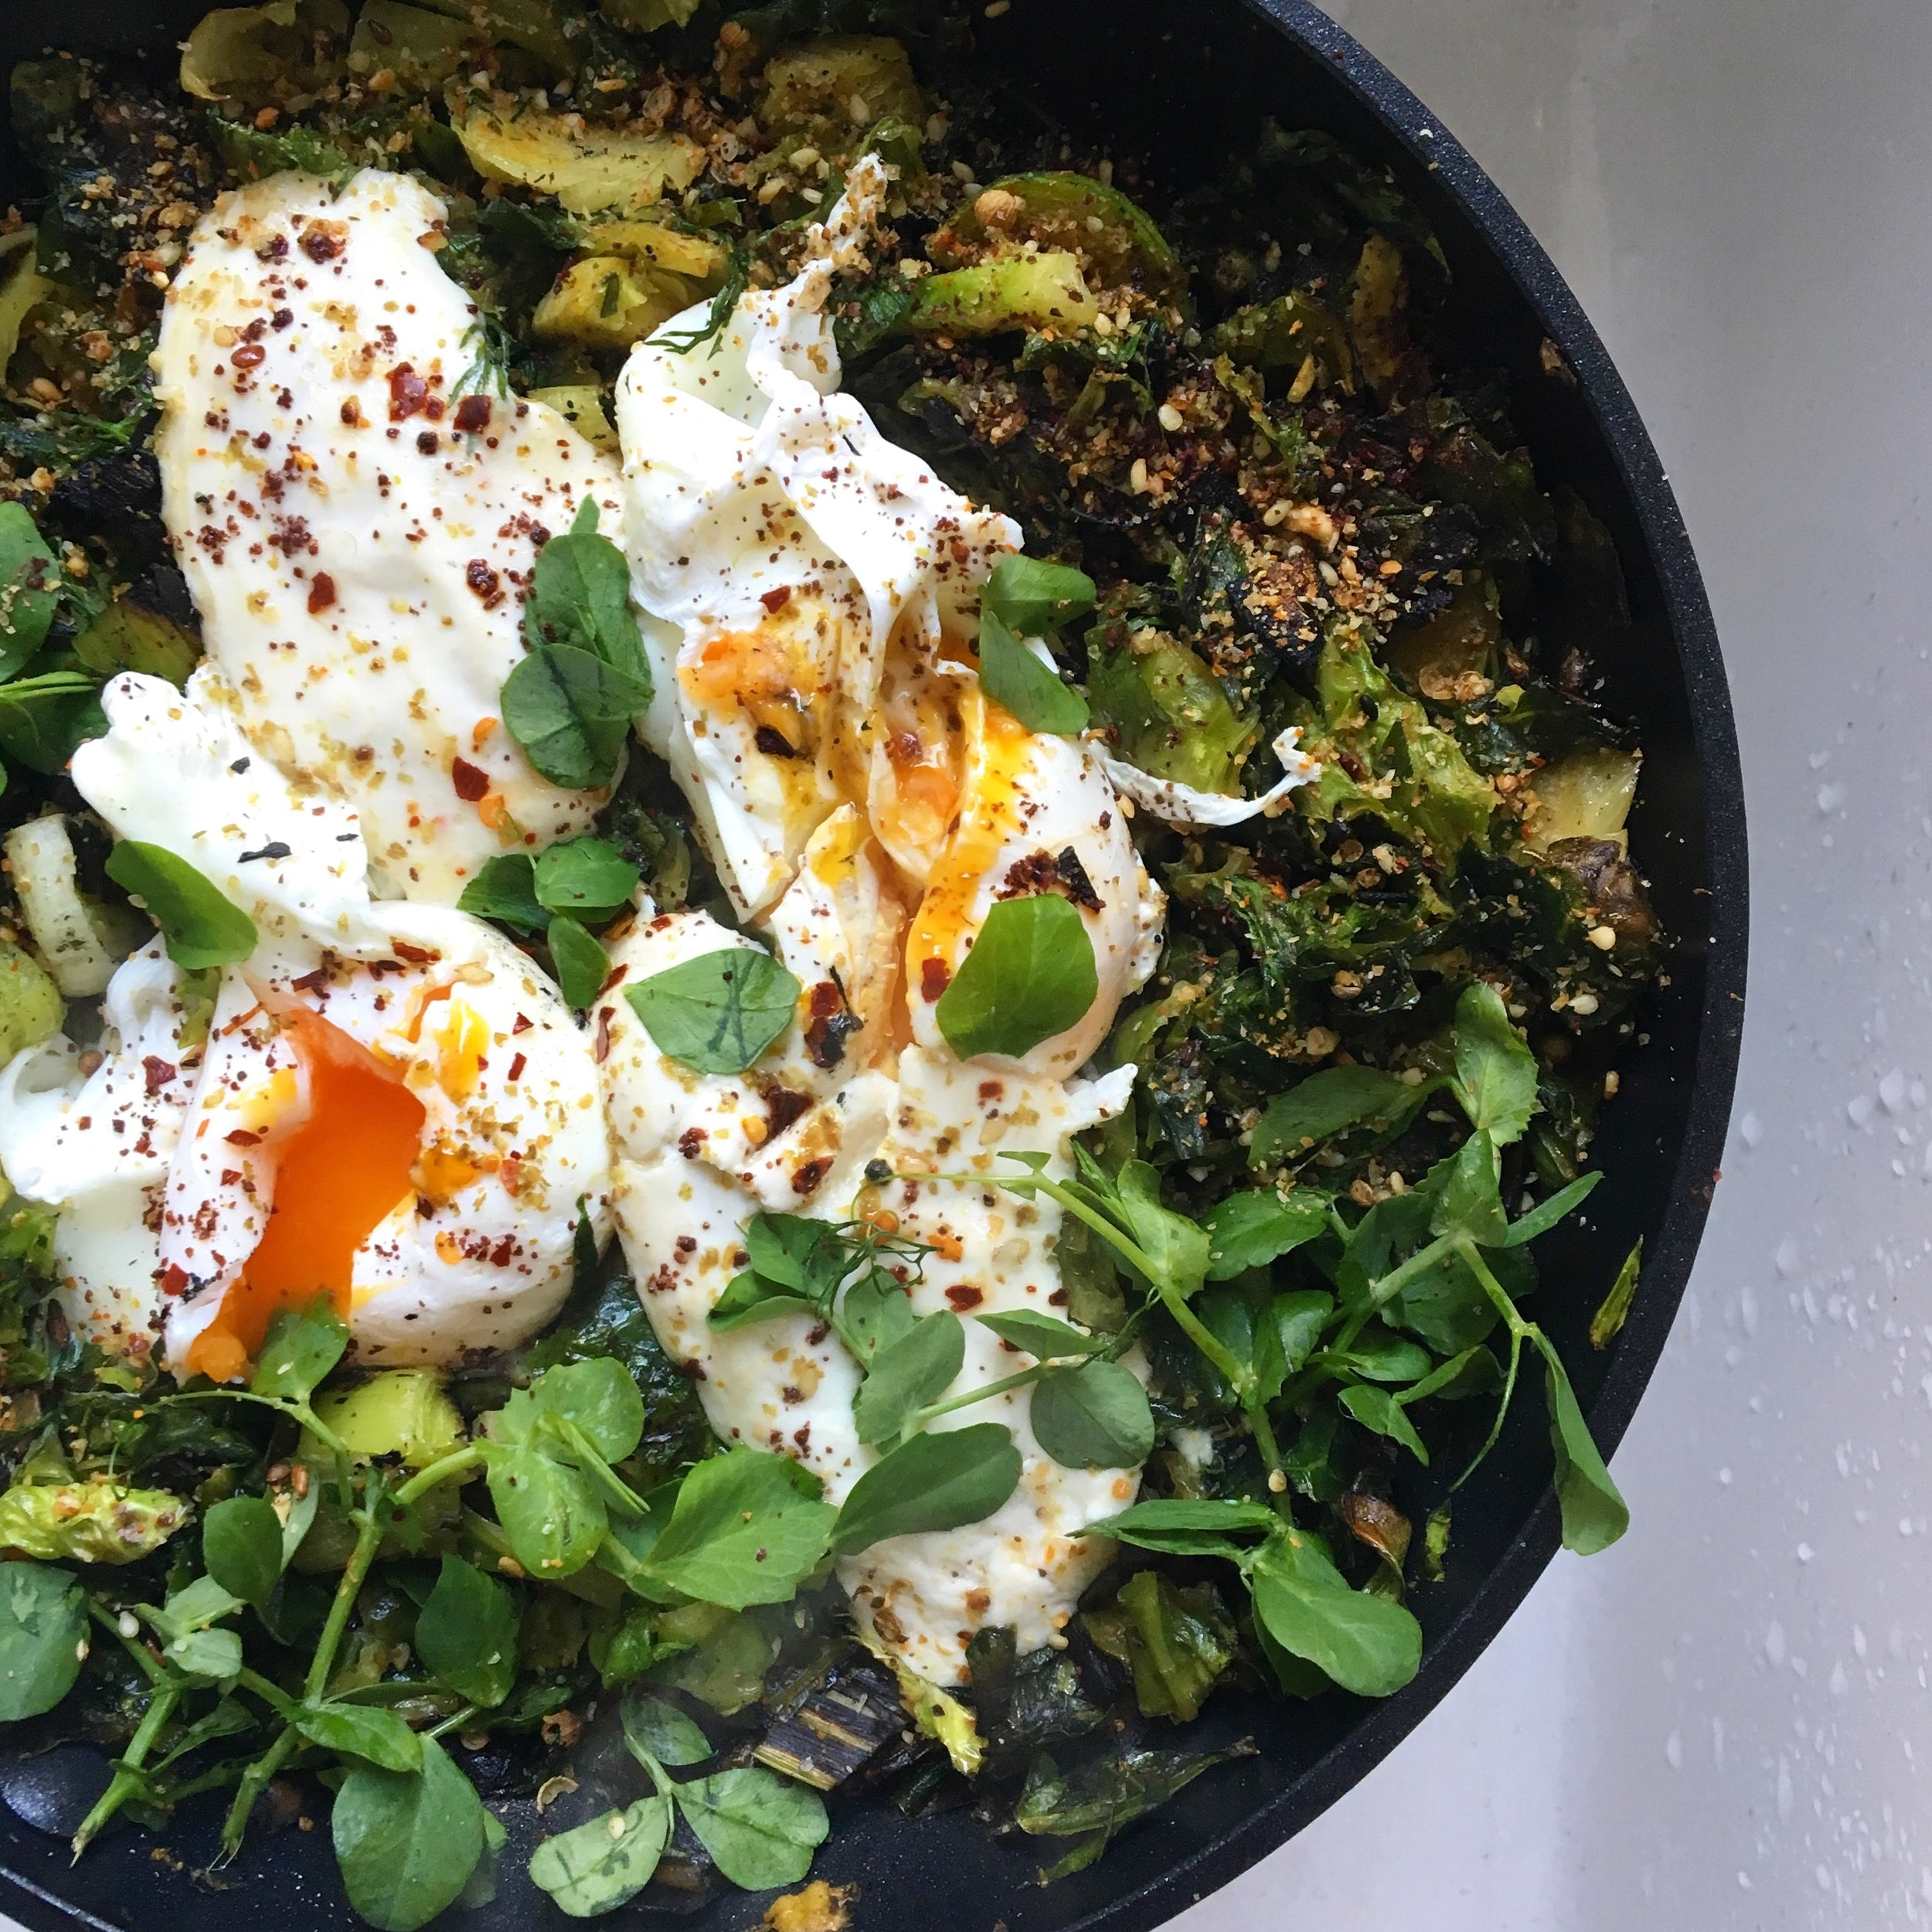 Green shakshuka topped with tahini yoghurt, preserved lemon, chilli flakes and dukkah.